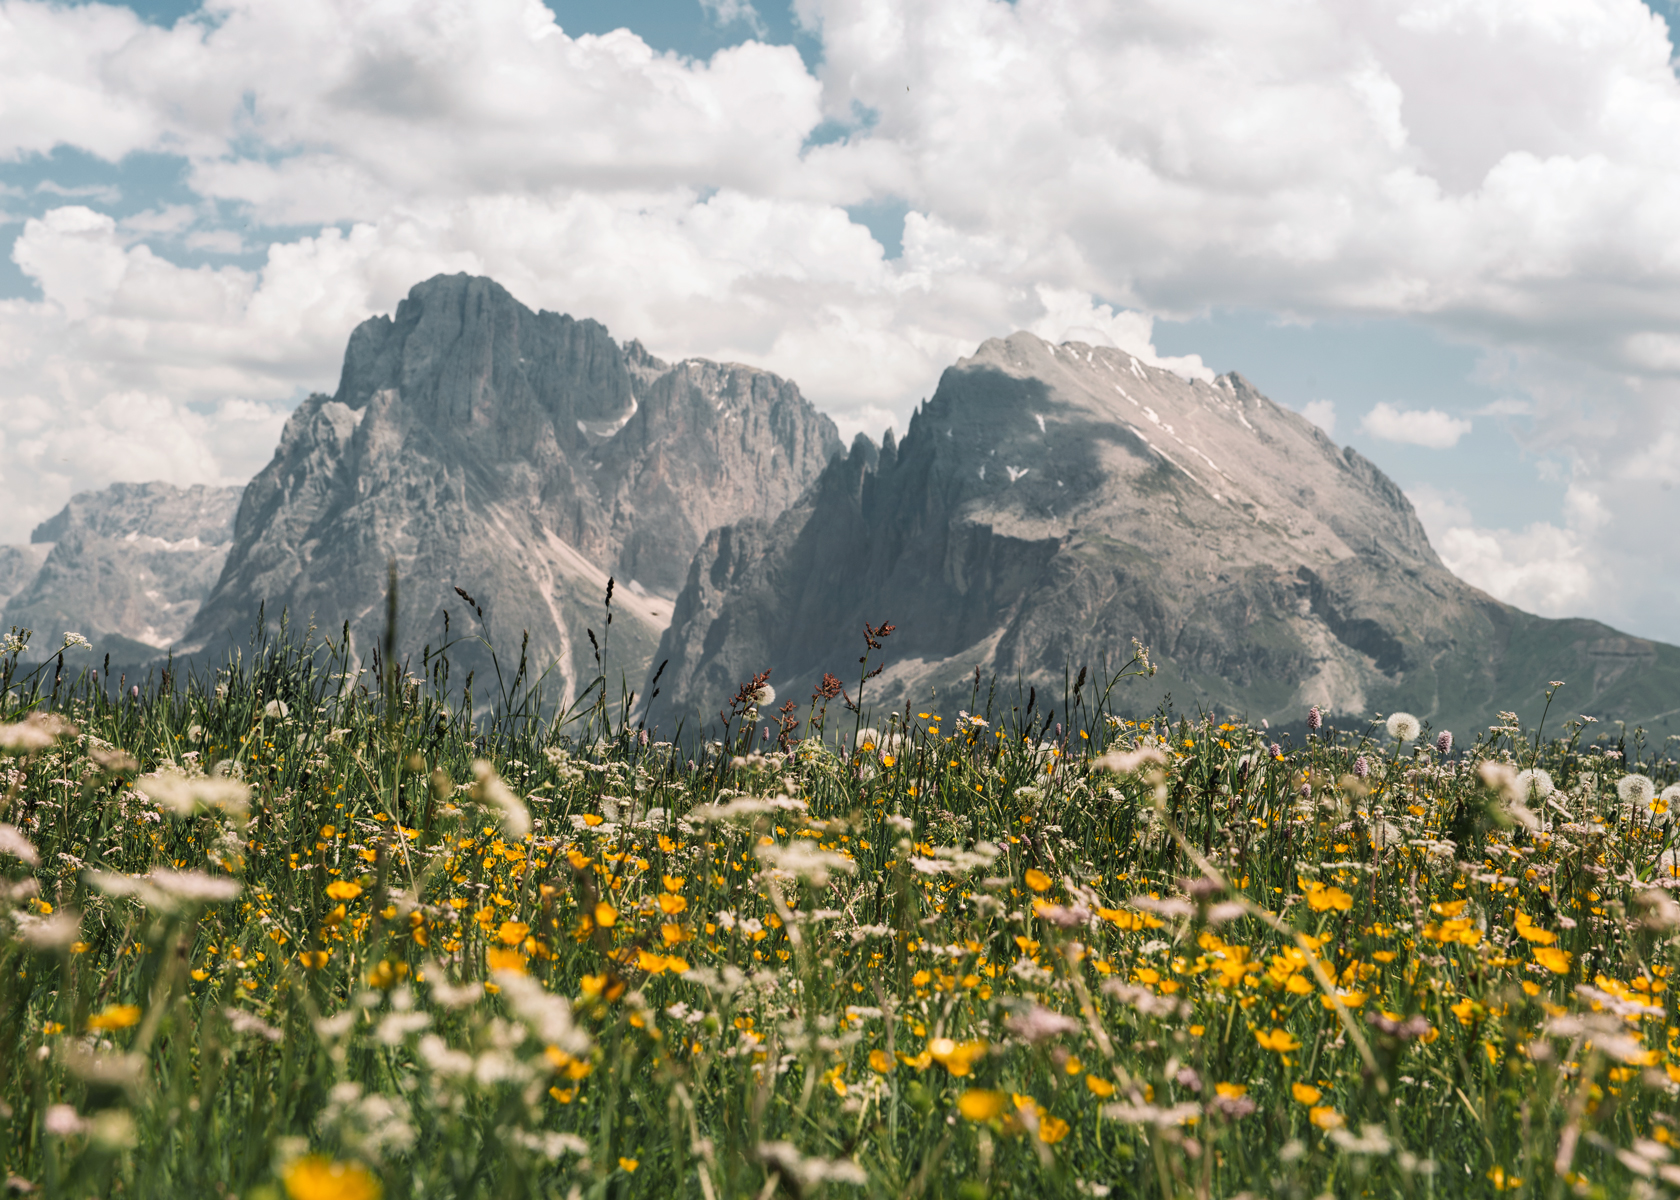 Springtime meadow flowers in the dolomites Italy - Kirsty Owen photography